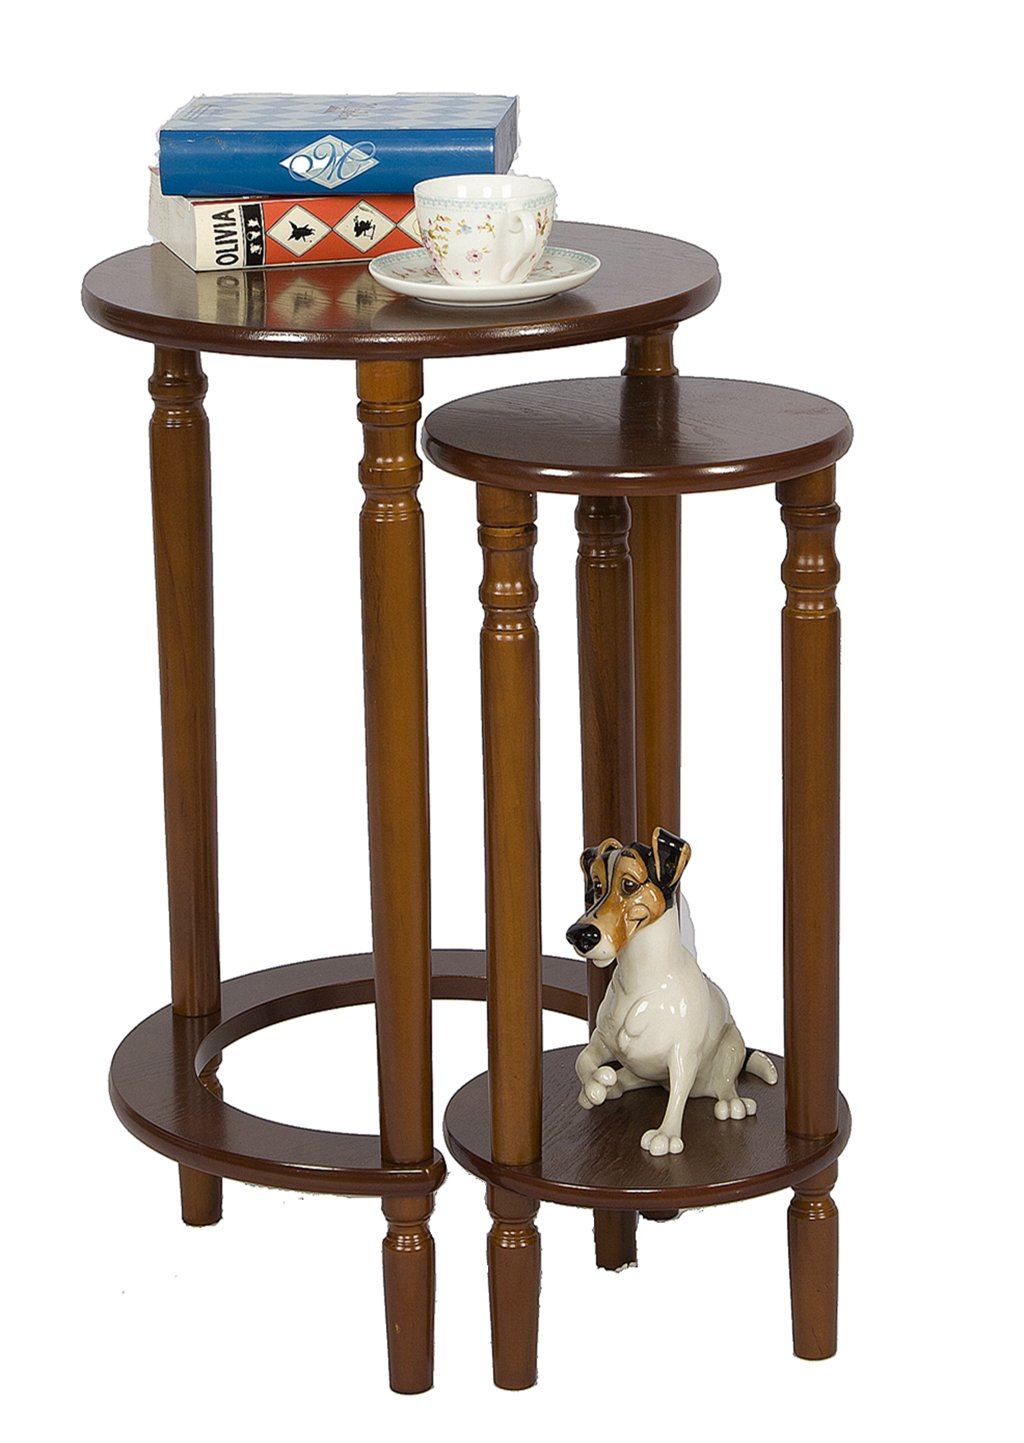 Accent Round Wood End Table Sofa Side Set of 2 for Small Spaces Coffee Nesting Tables (WALNUT) by Yaker's collection